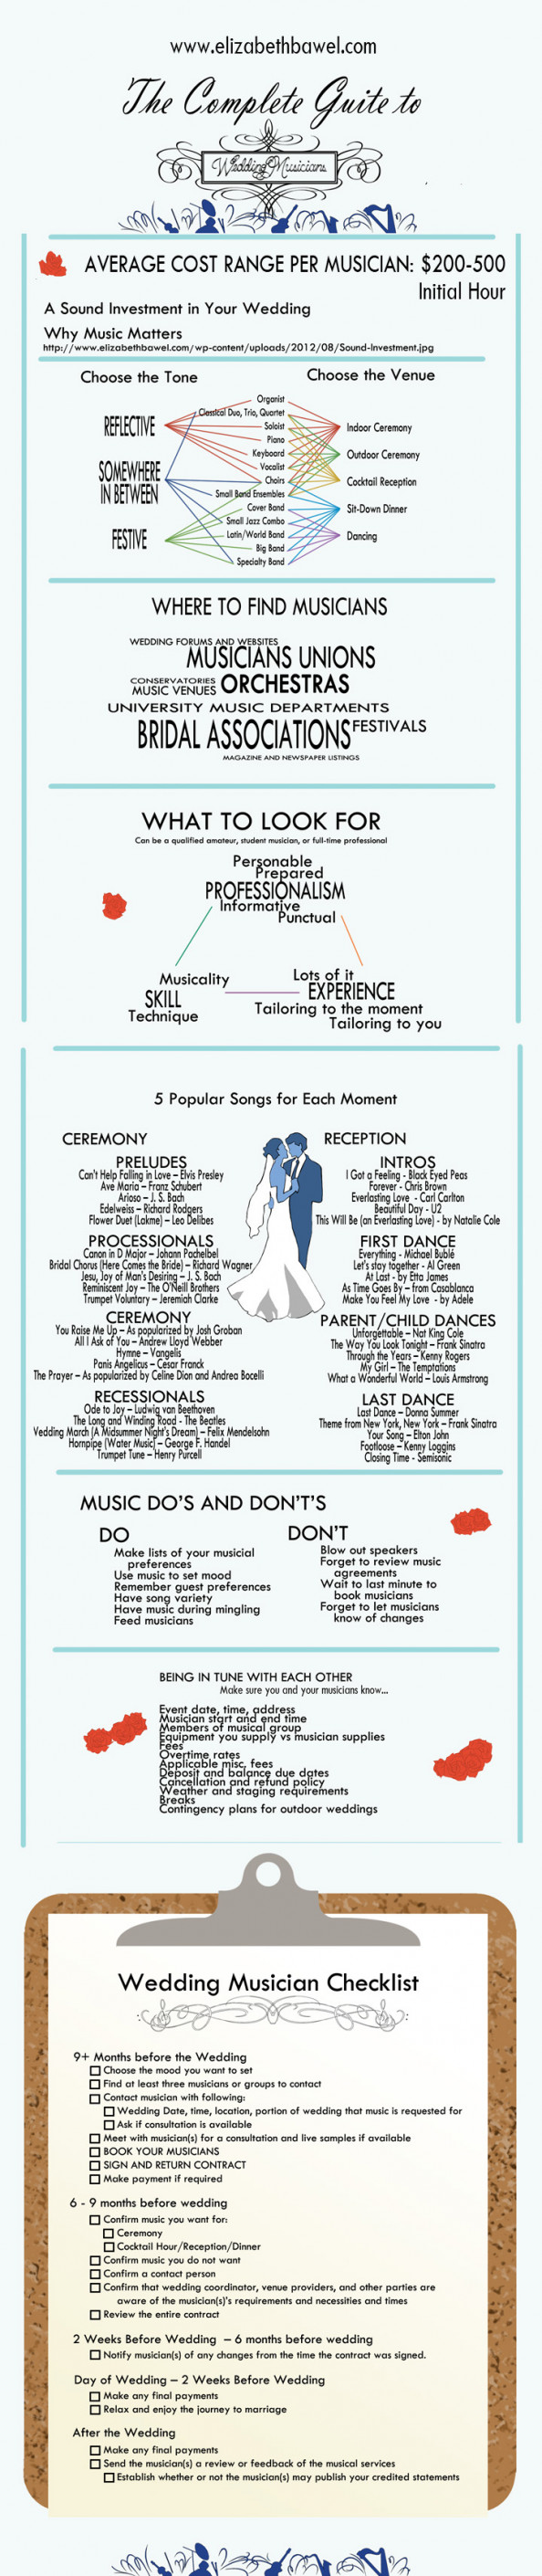 The Complete Guide to Wedding Musicians Infographic